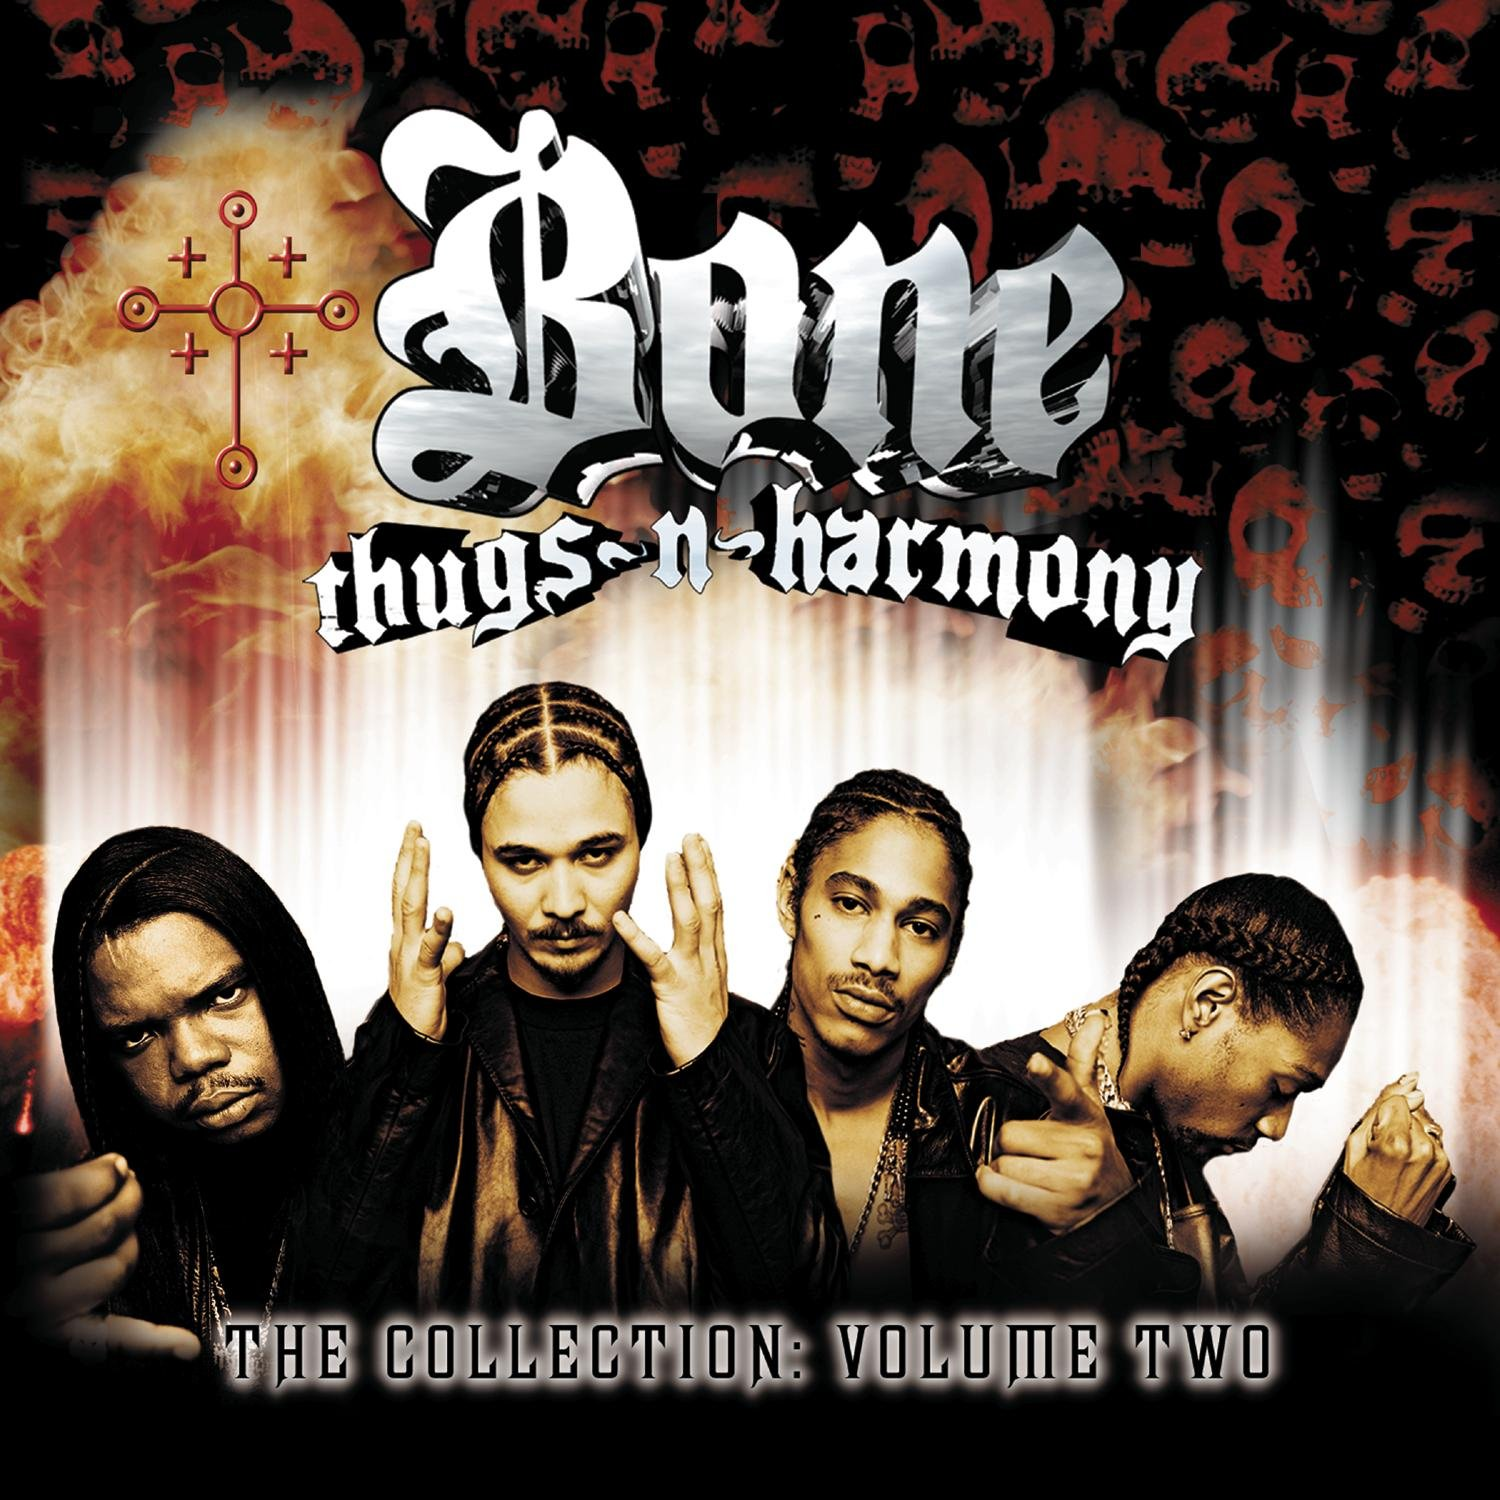 5c7486d645f9b Bone Thugs-n-Harmony - The Collection Volume Two - Amazon.com Music